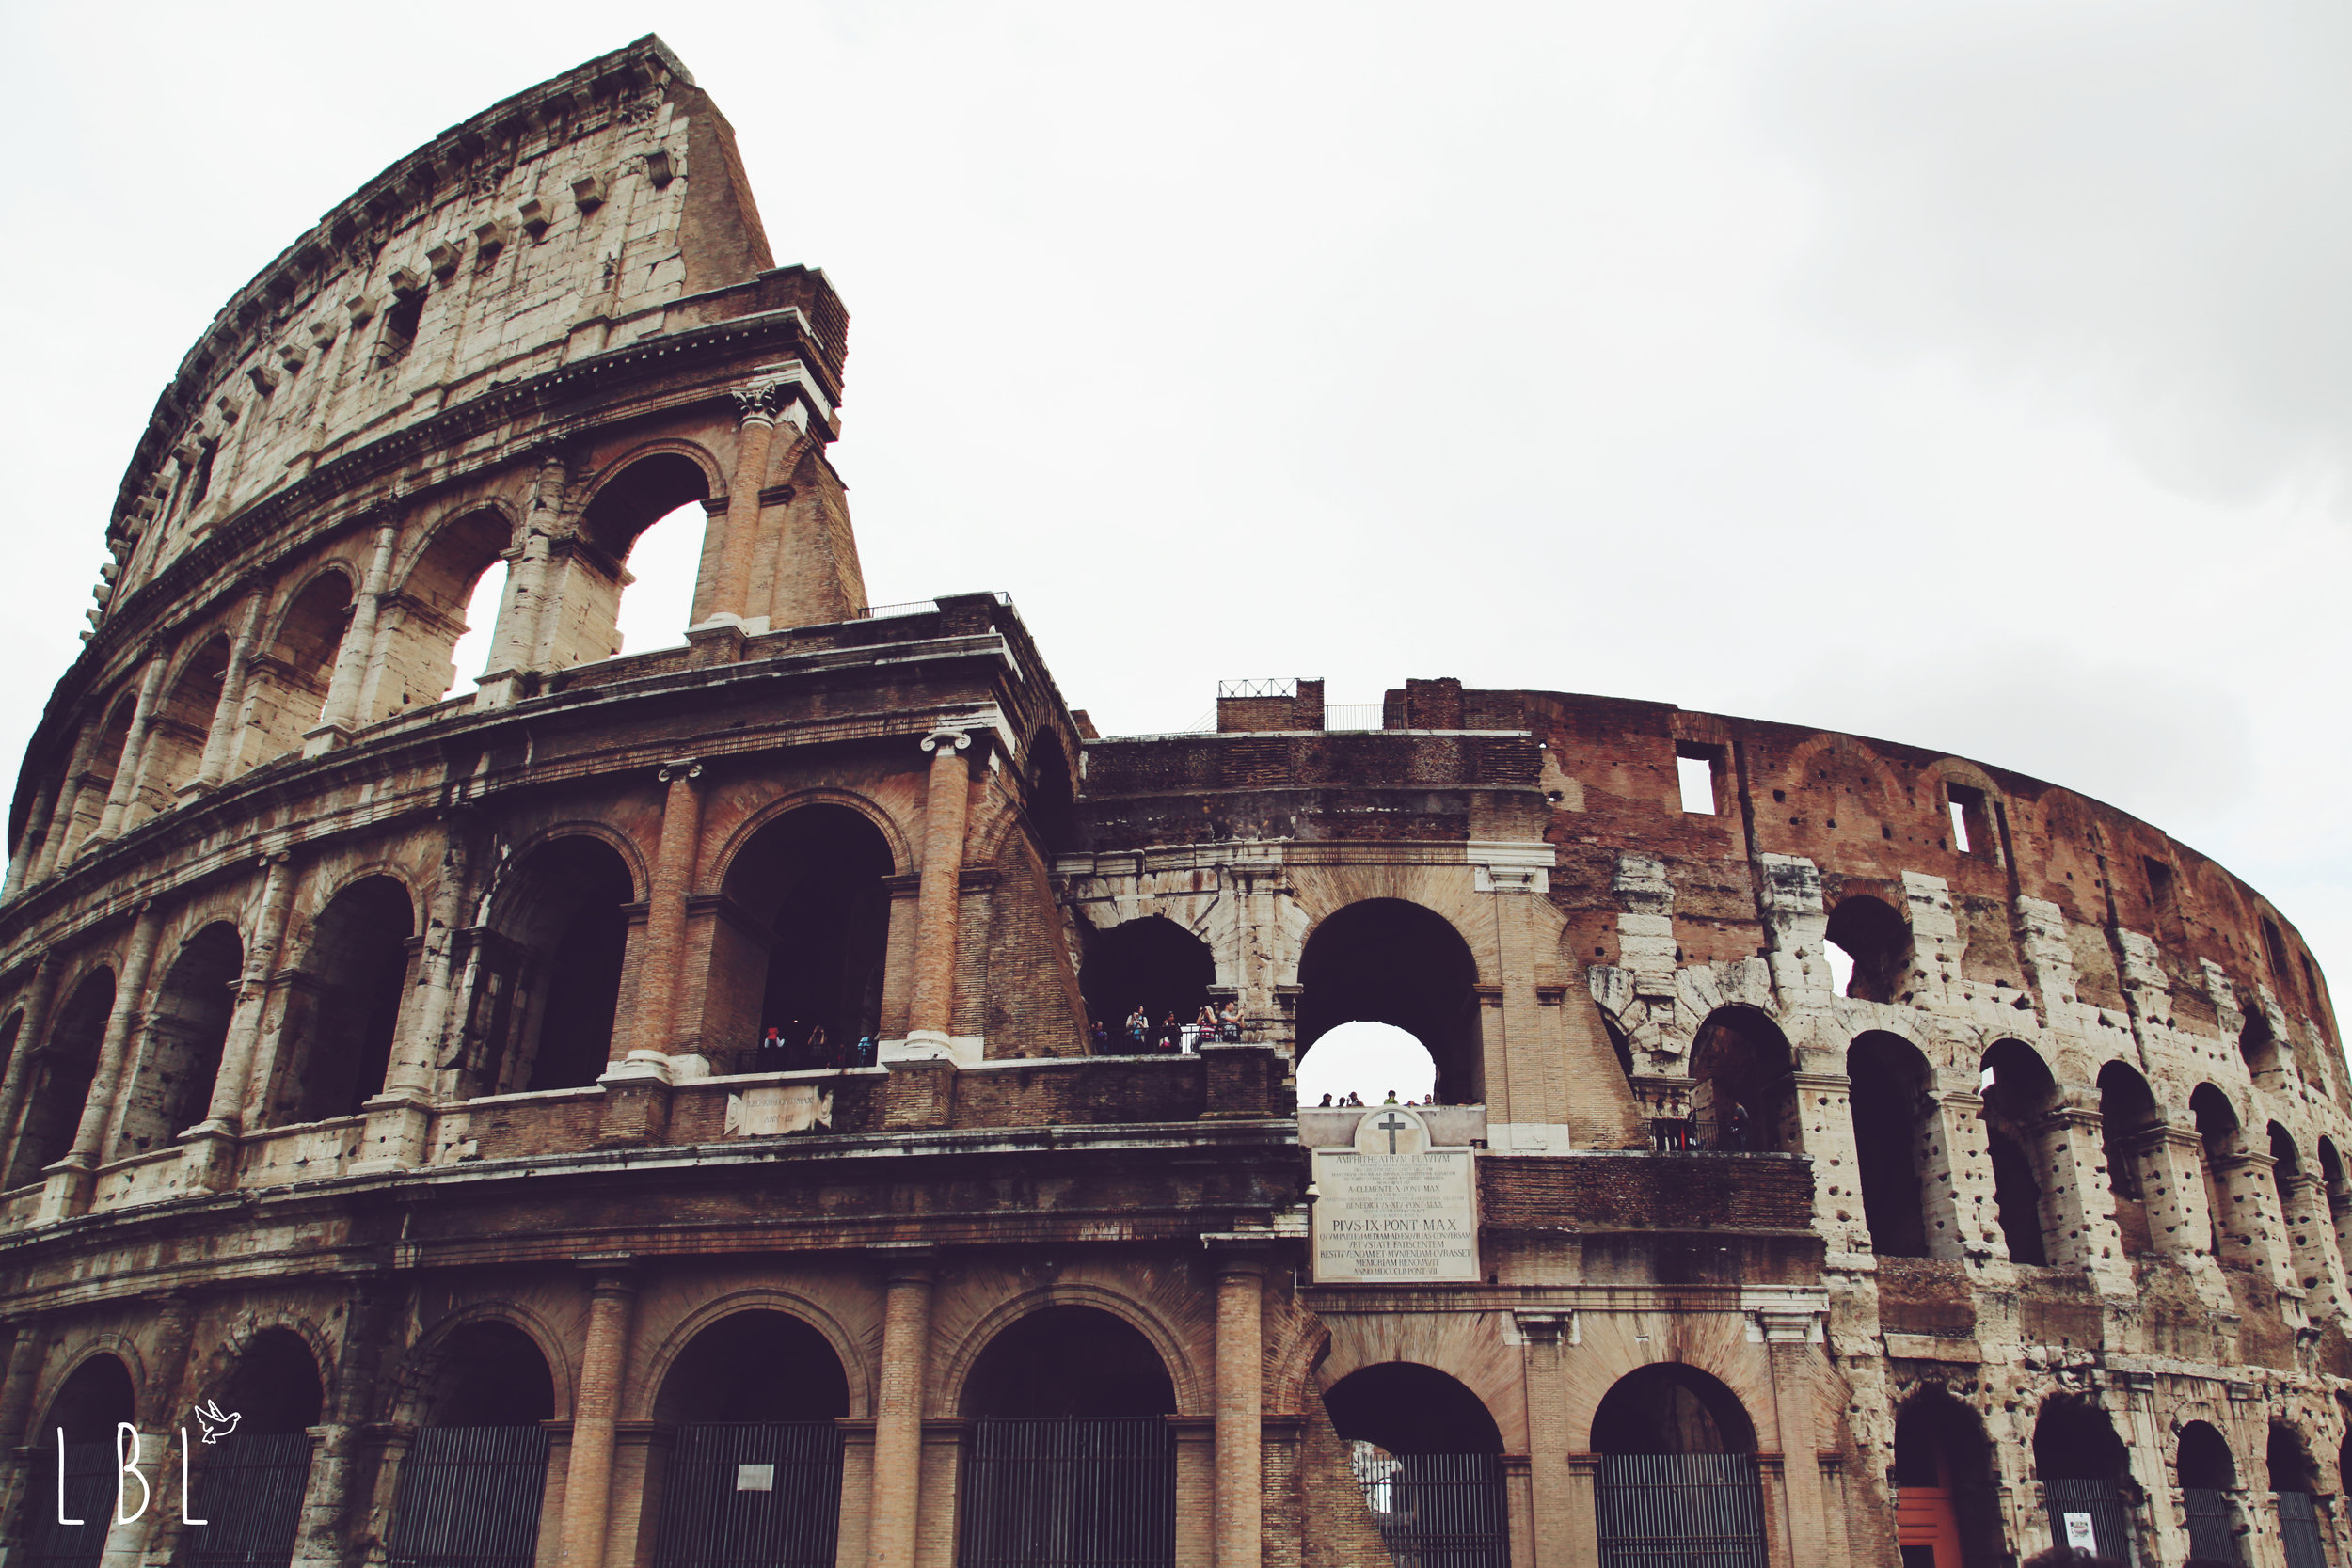 Also taken by Chelsea, a fantastic view of the Colosseum